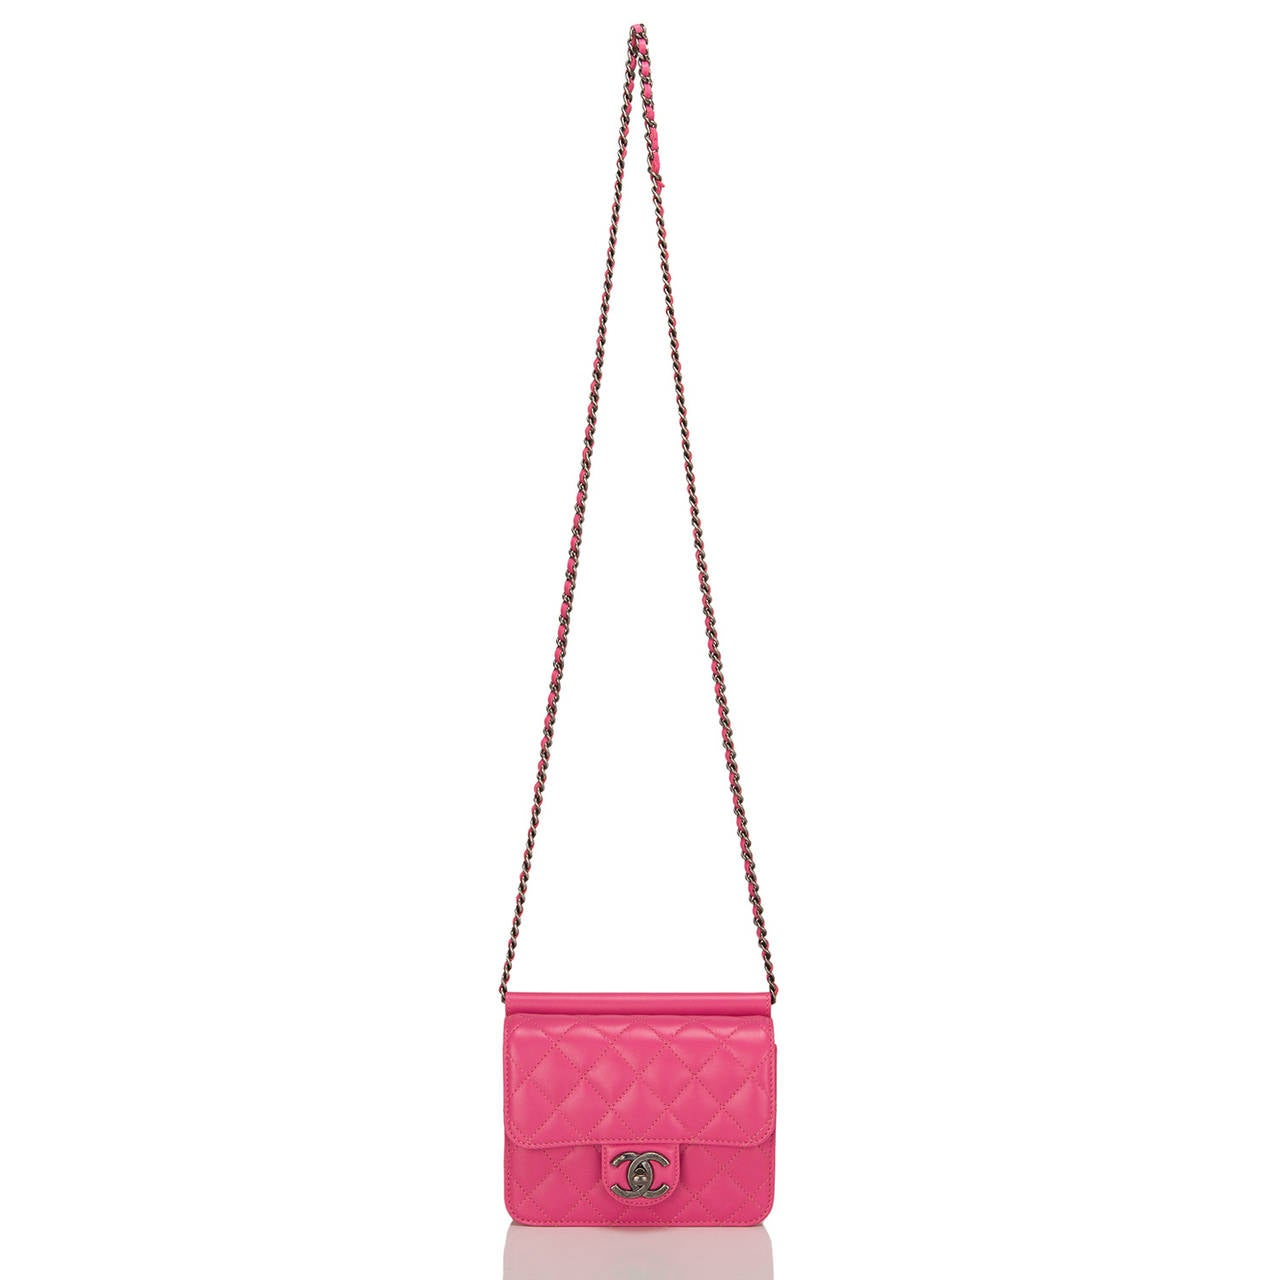 Chanel Pink Crossing Times Mini Flap Bag For Sale 1